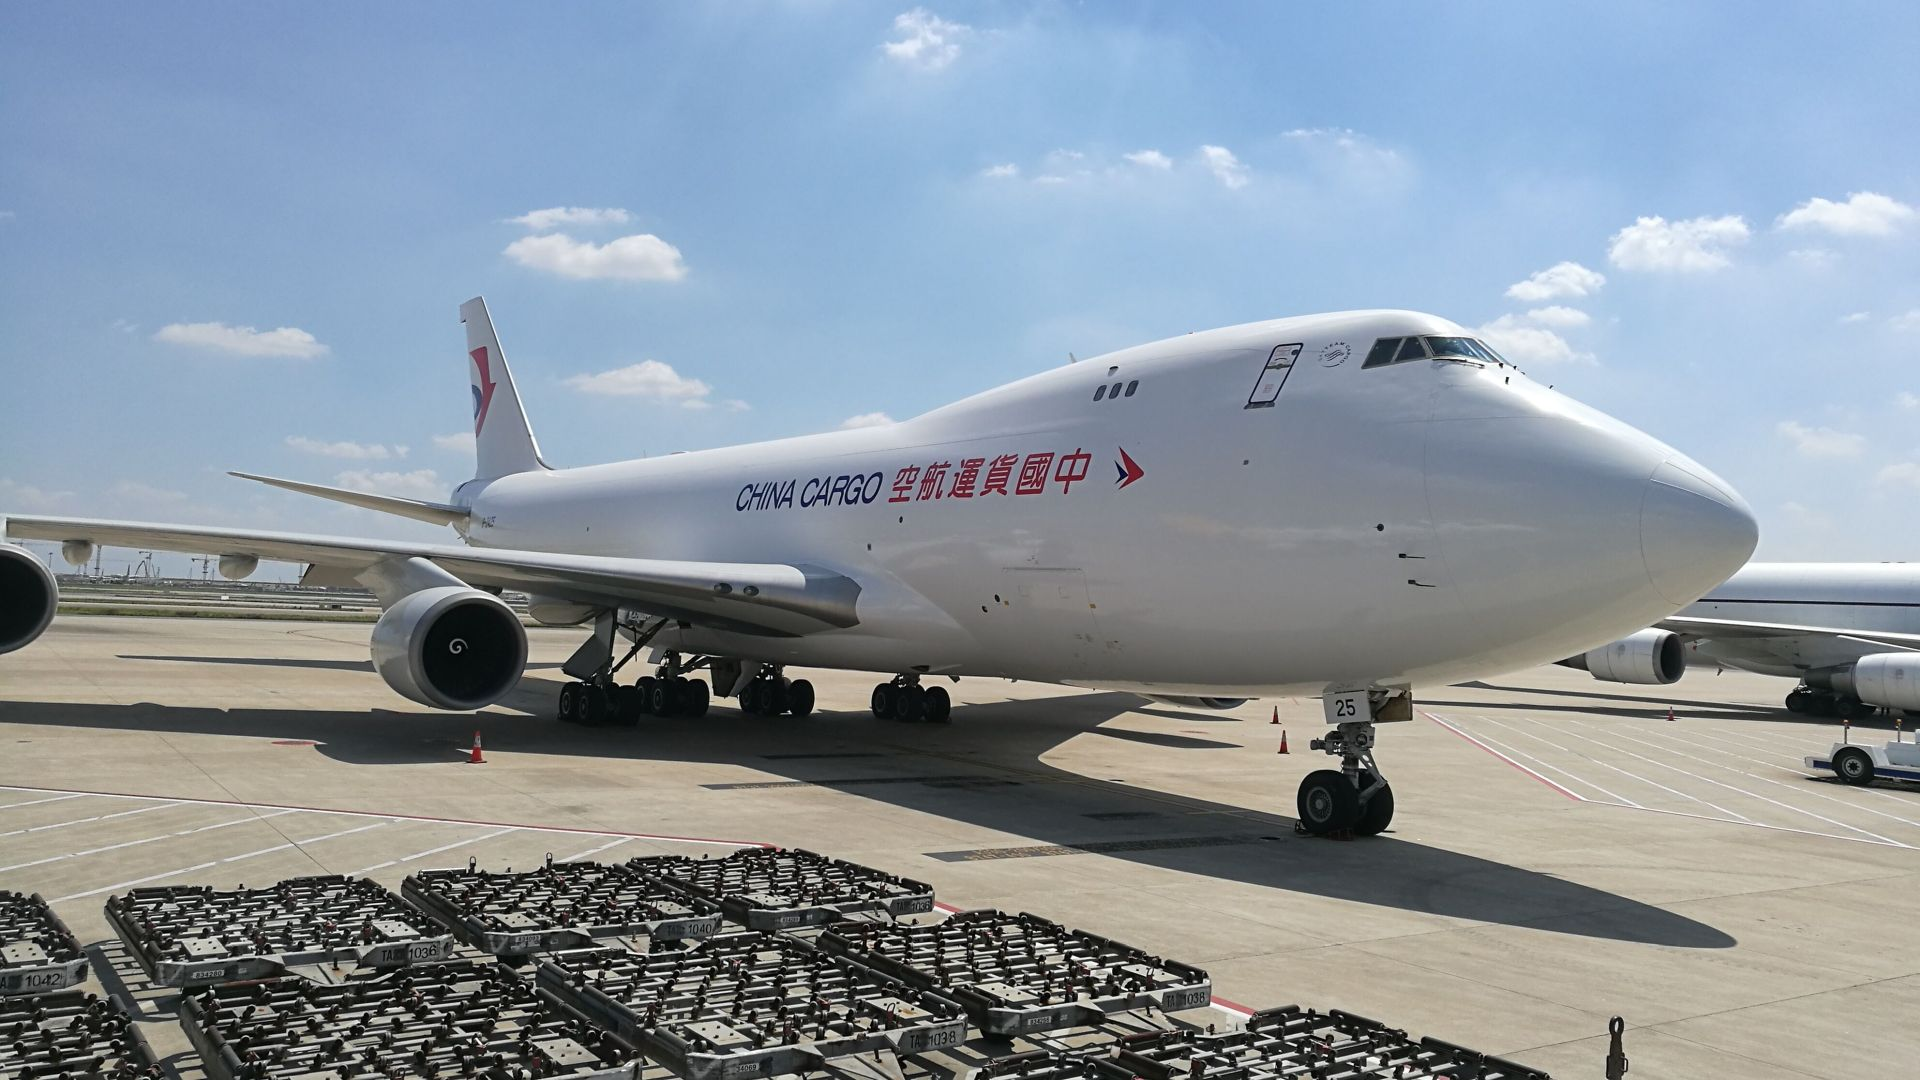 Component support for China Cargo Airlines' Boeing 747 freighter aircraft